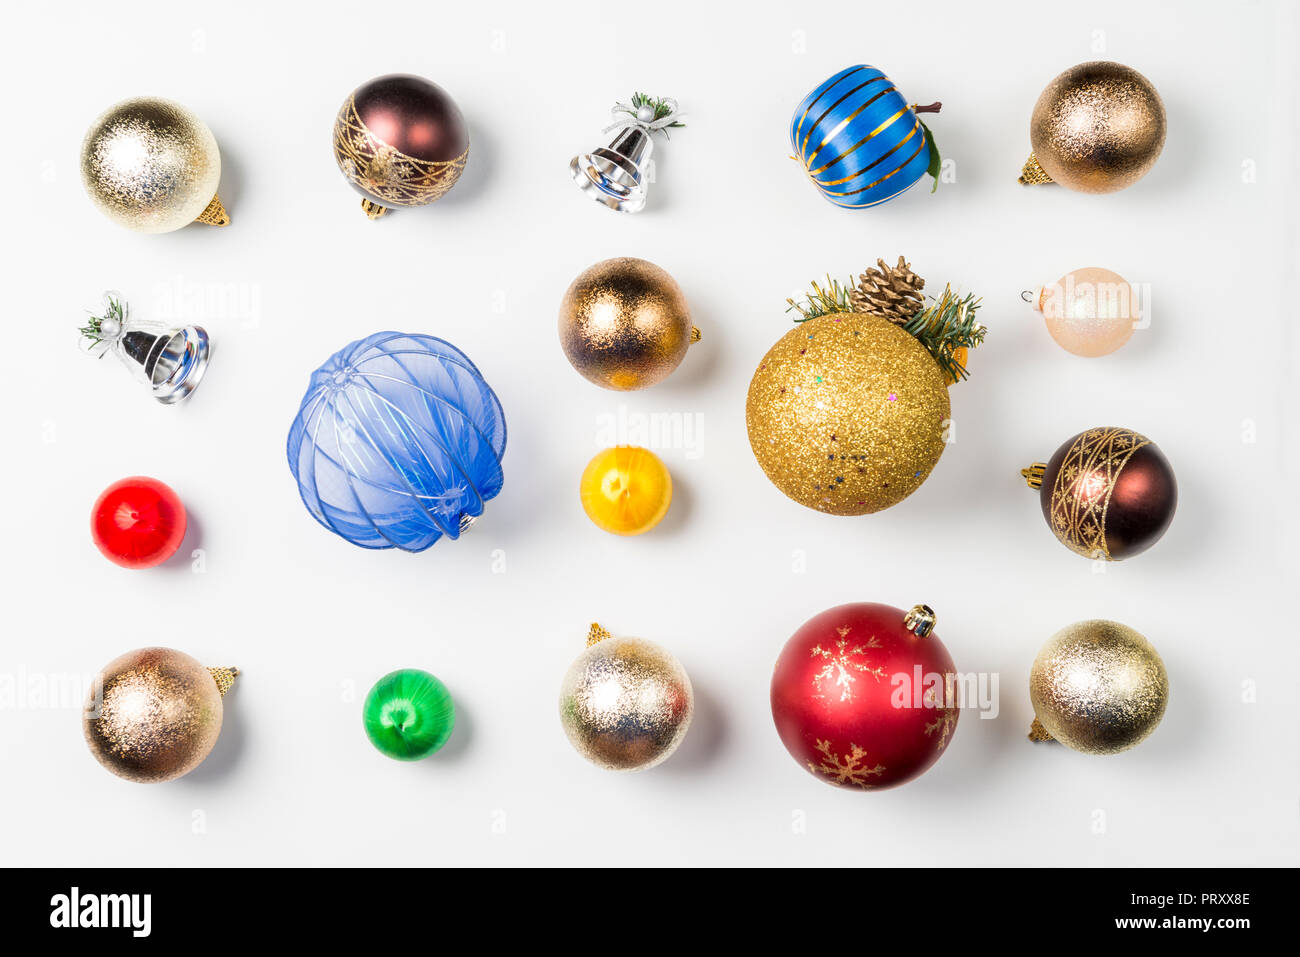 Composition with balls and Christmas decorations on white background ...